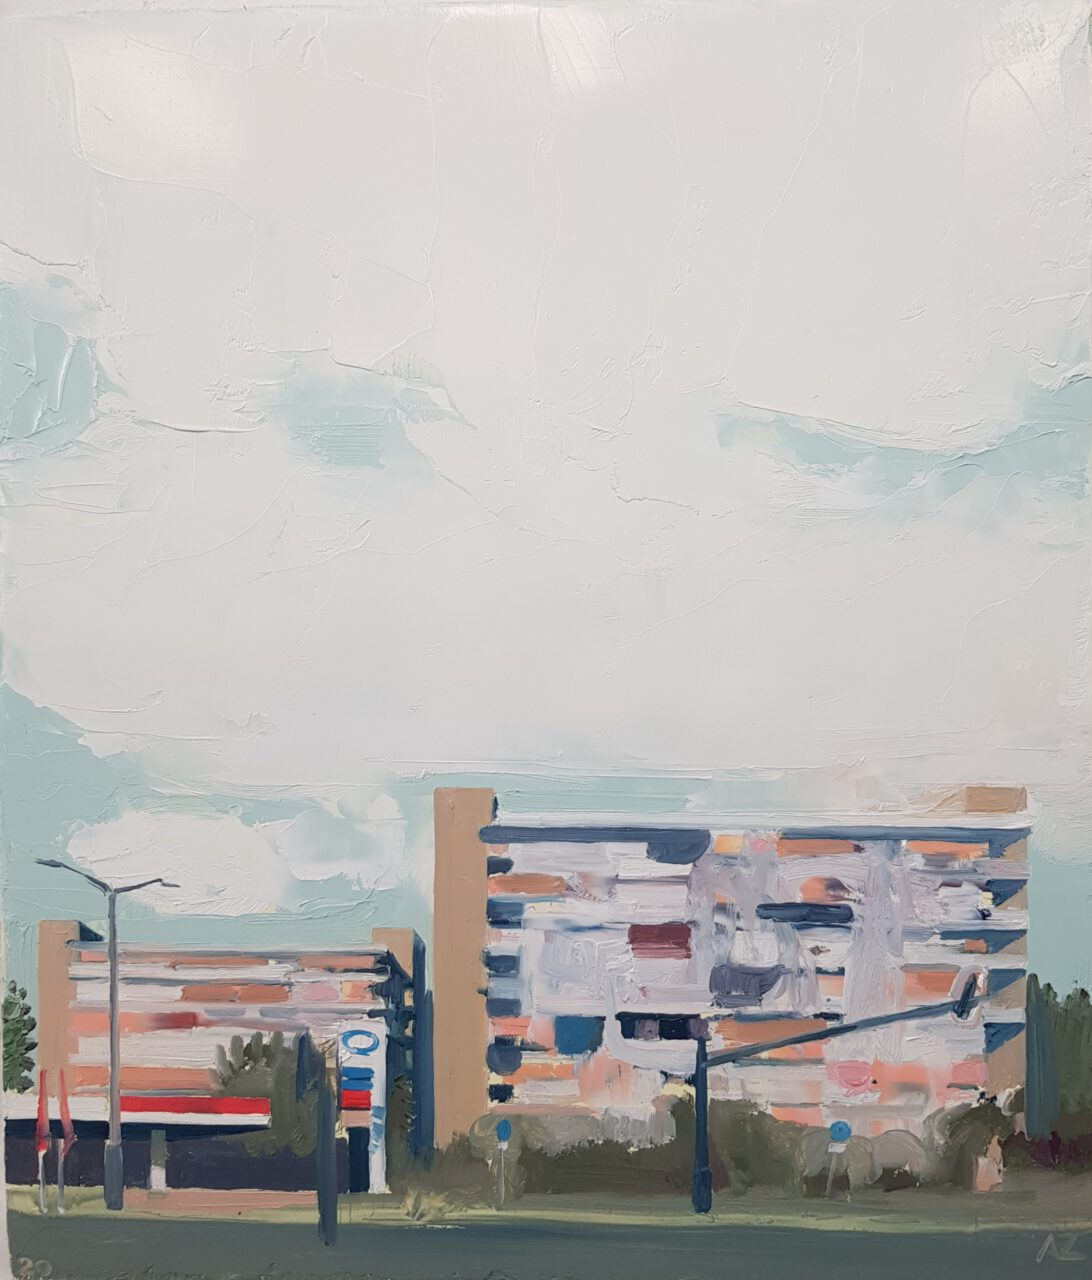 Nachtigall Platz, 2020. Oil on panel, 31x26cm.